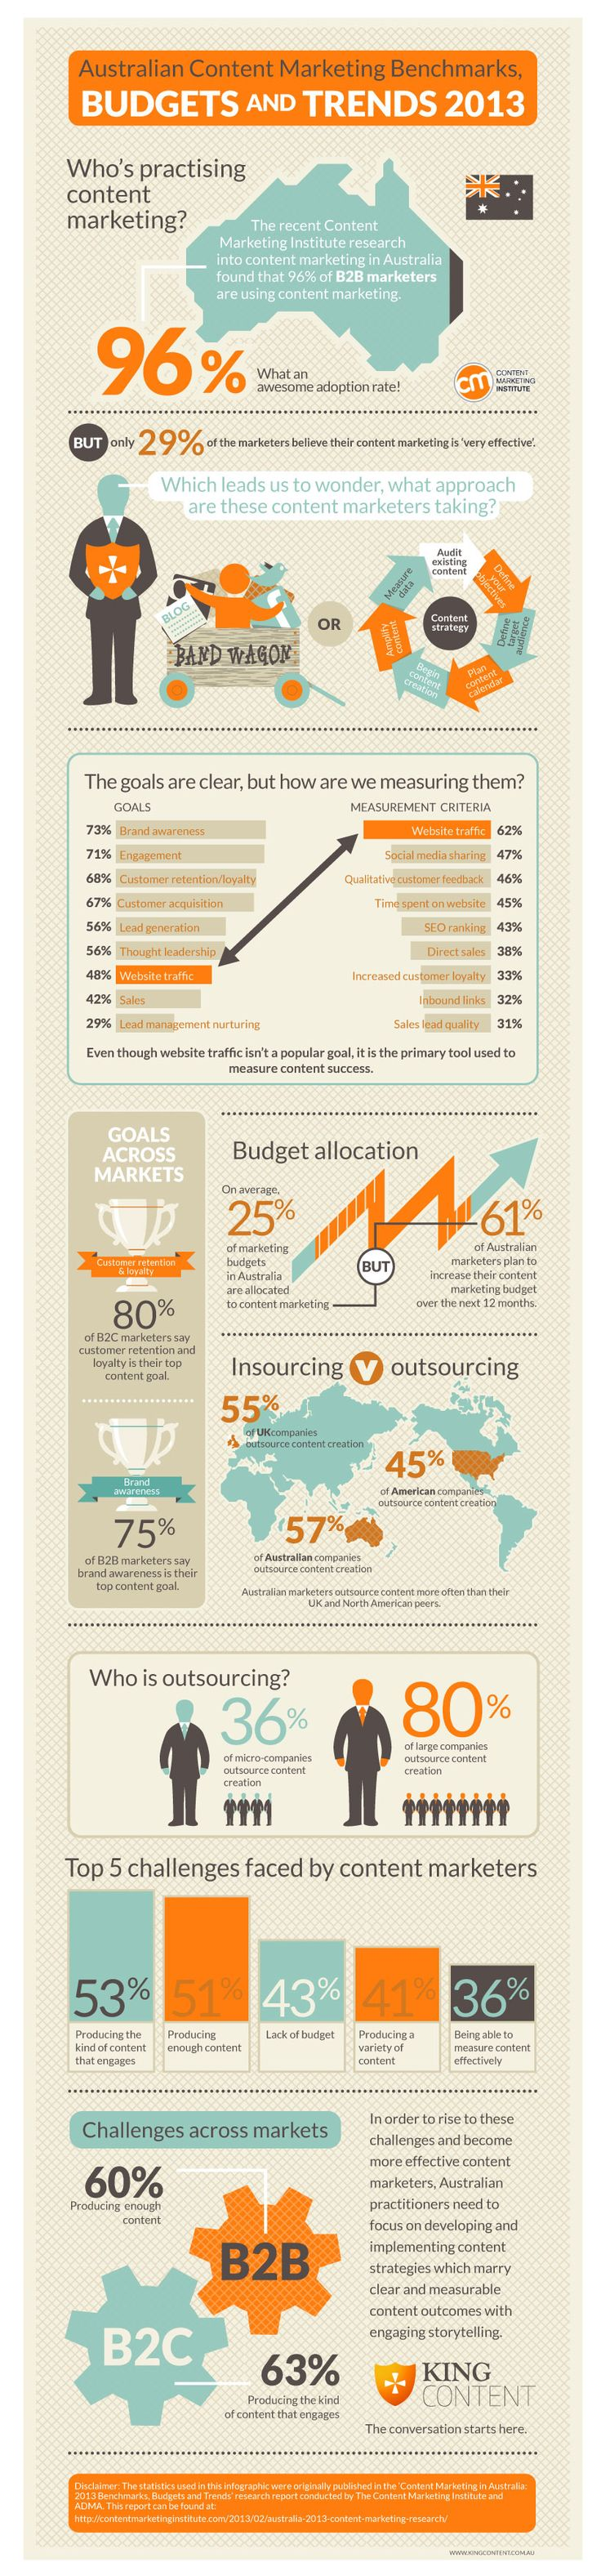 Infographic on CMI research into Australian content marketing benchmarks, budgets and trends.   http://www.kingcontent.com.au/blog/australian-content-marketing-research/